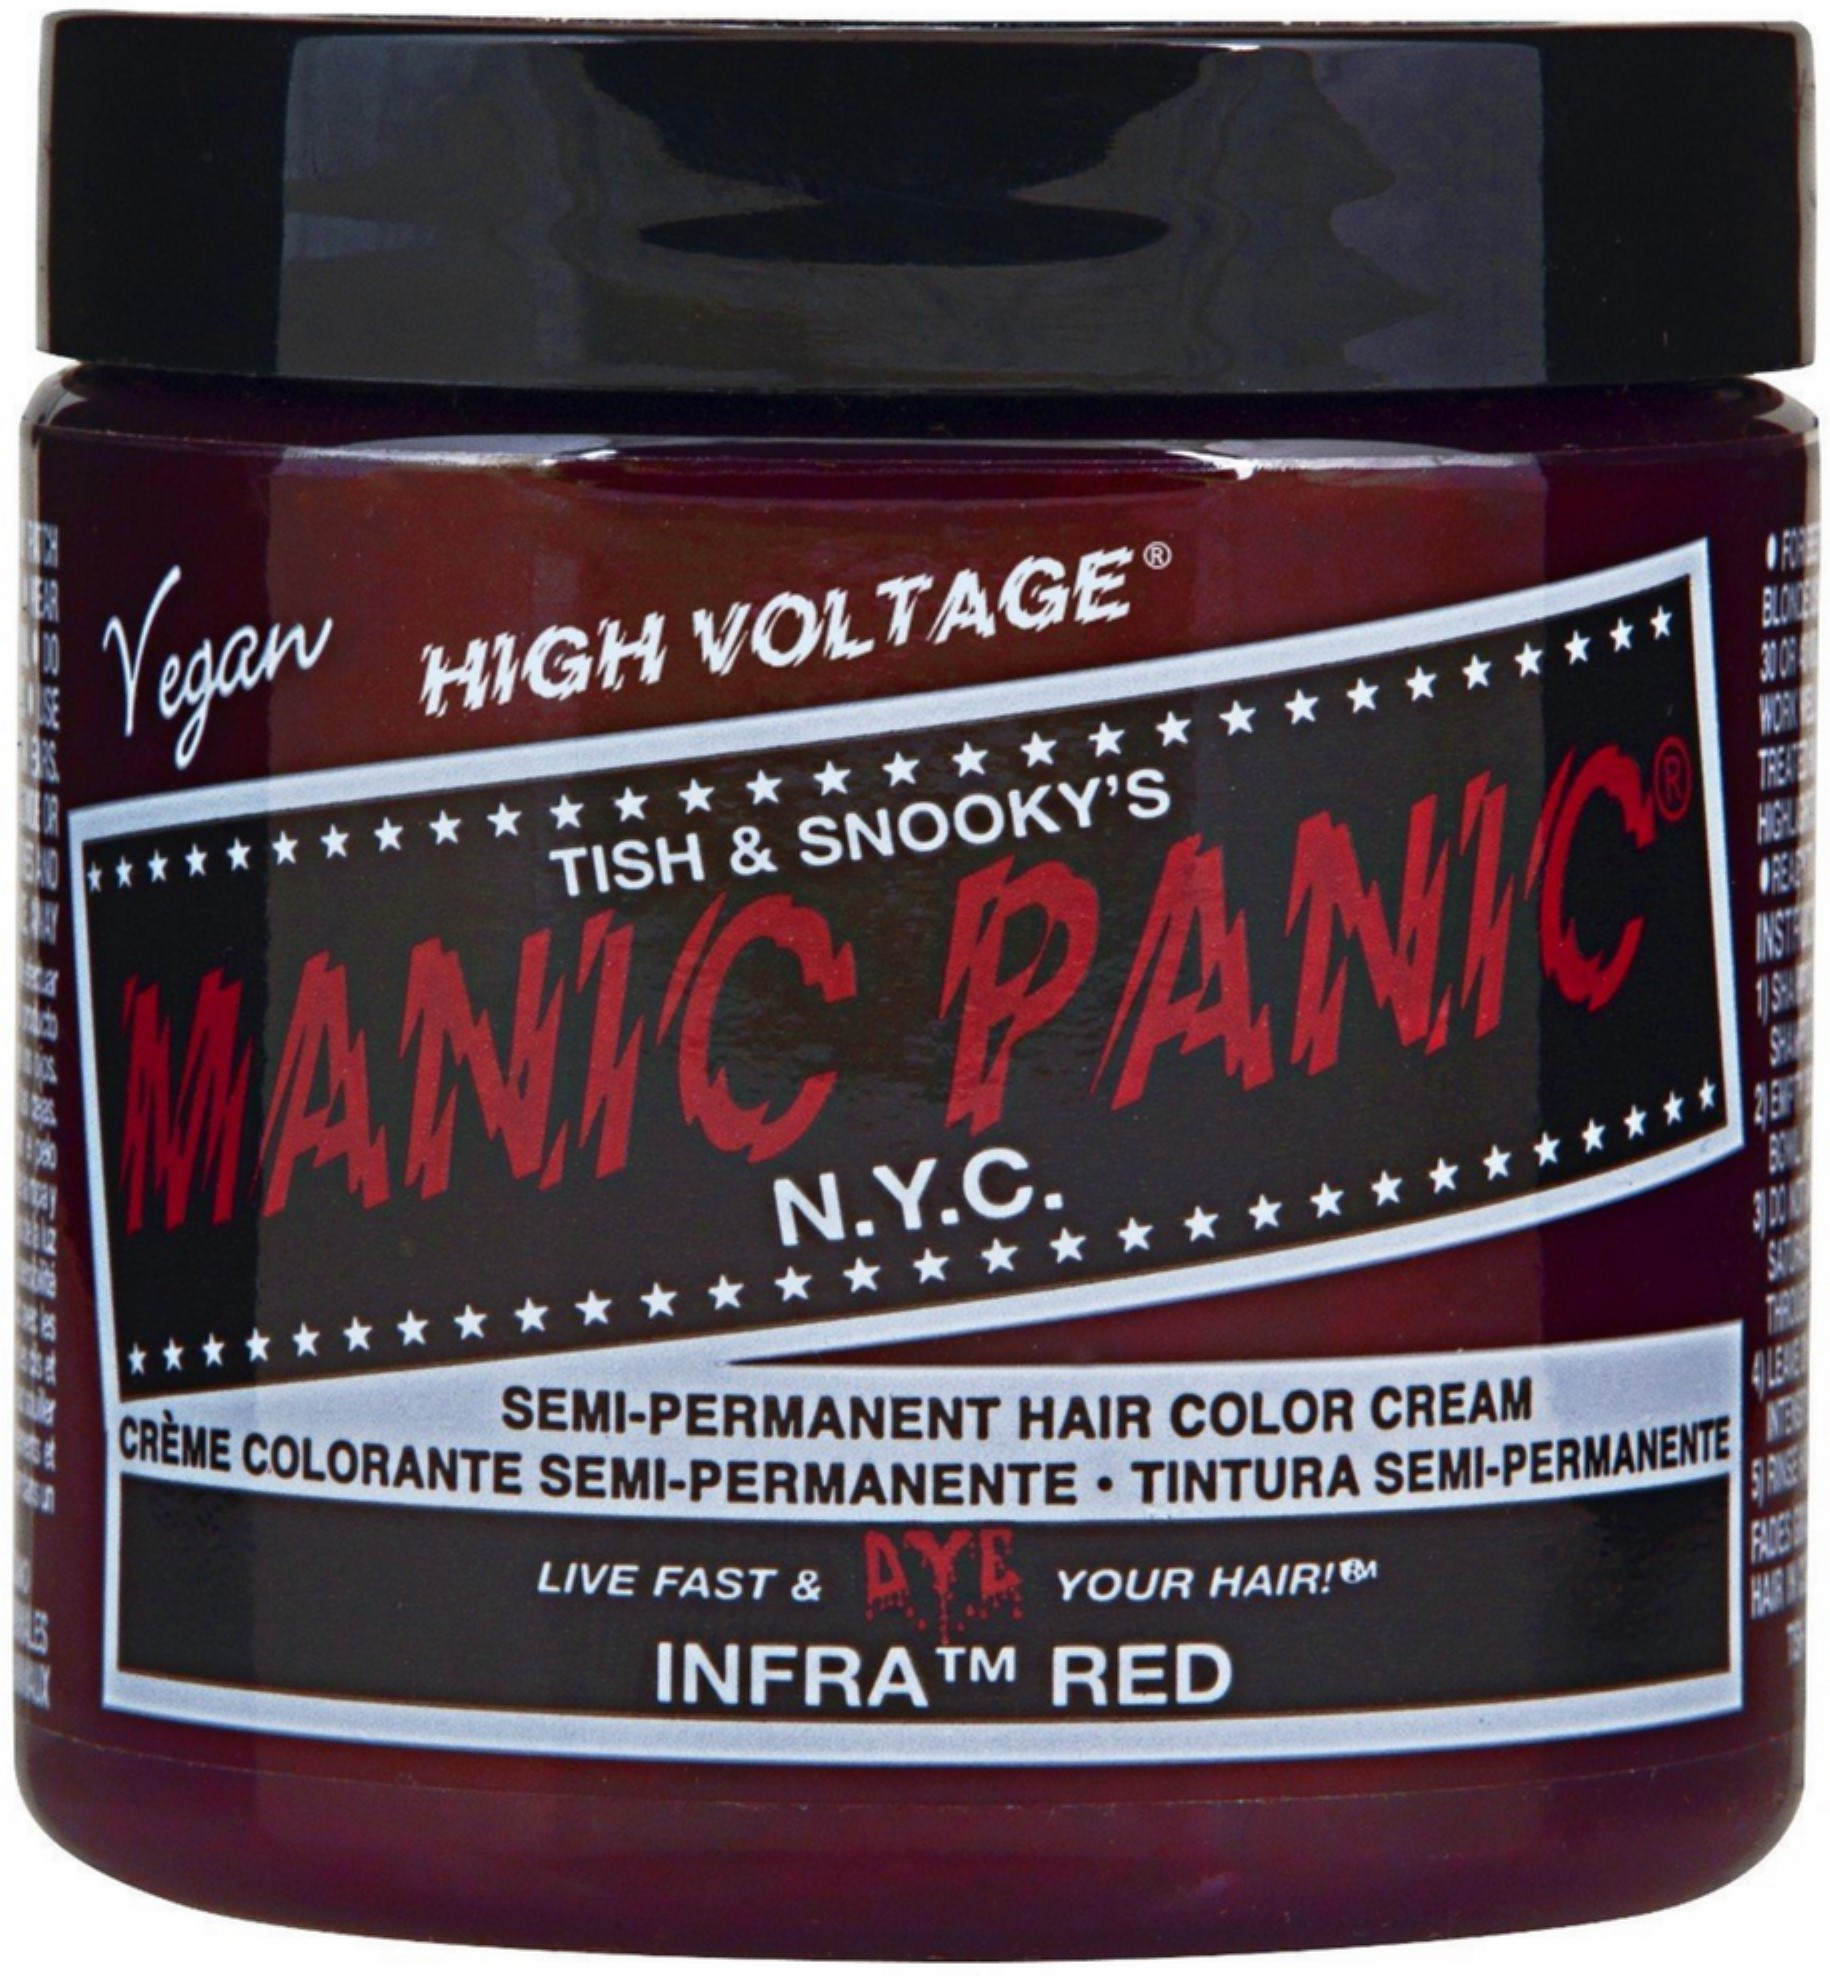 Manic Panic Semi-Permament Hair Color Cream, Infra Red 4 oz